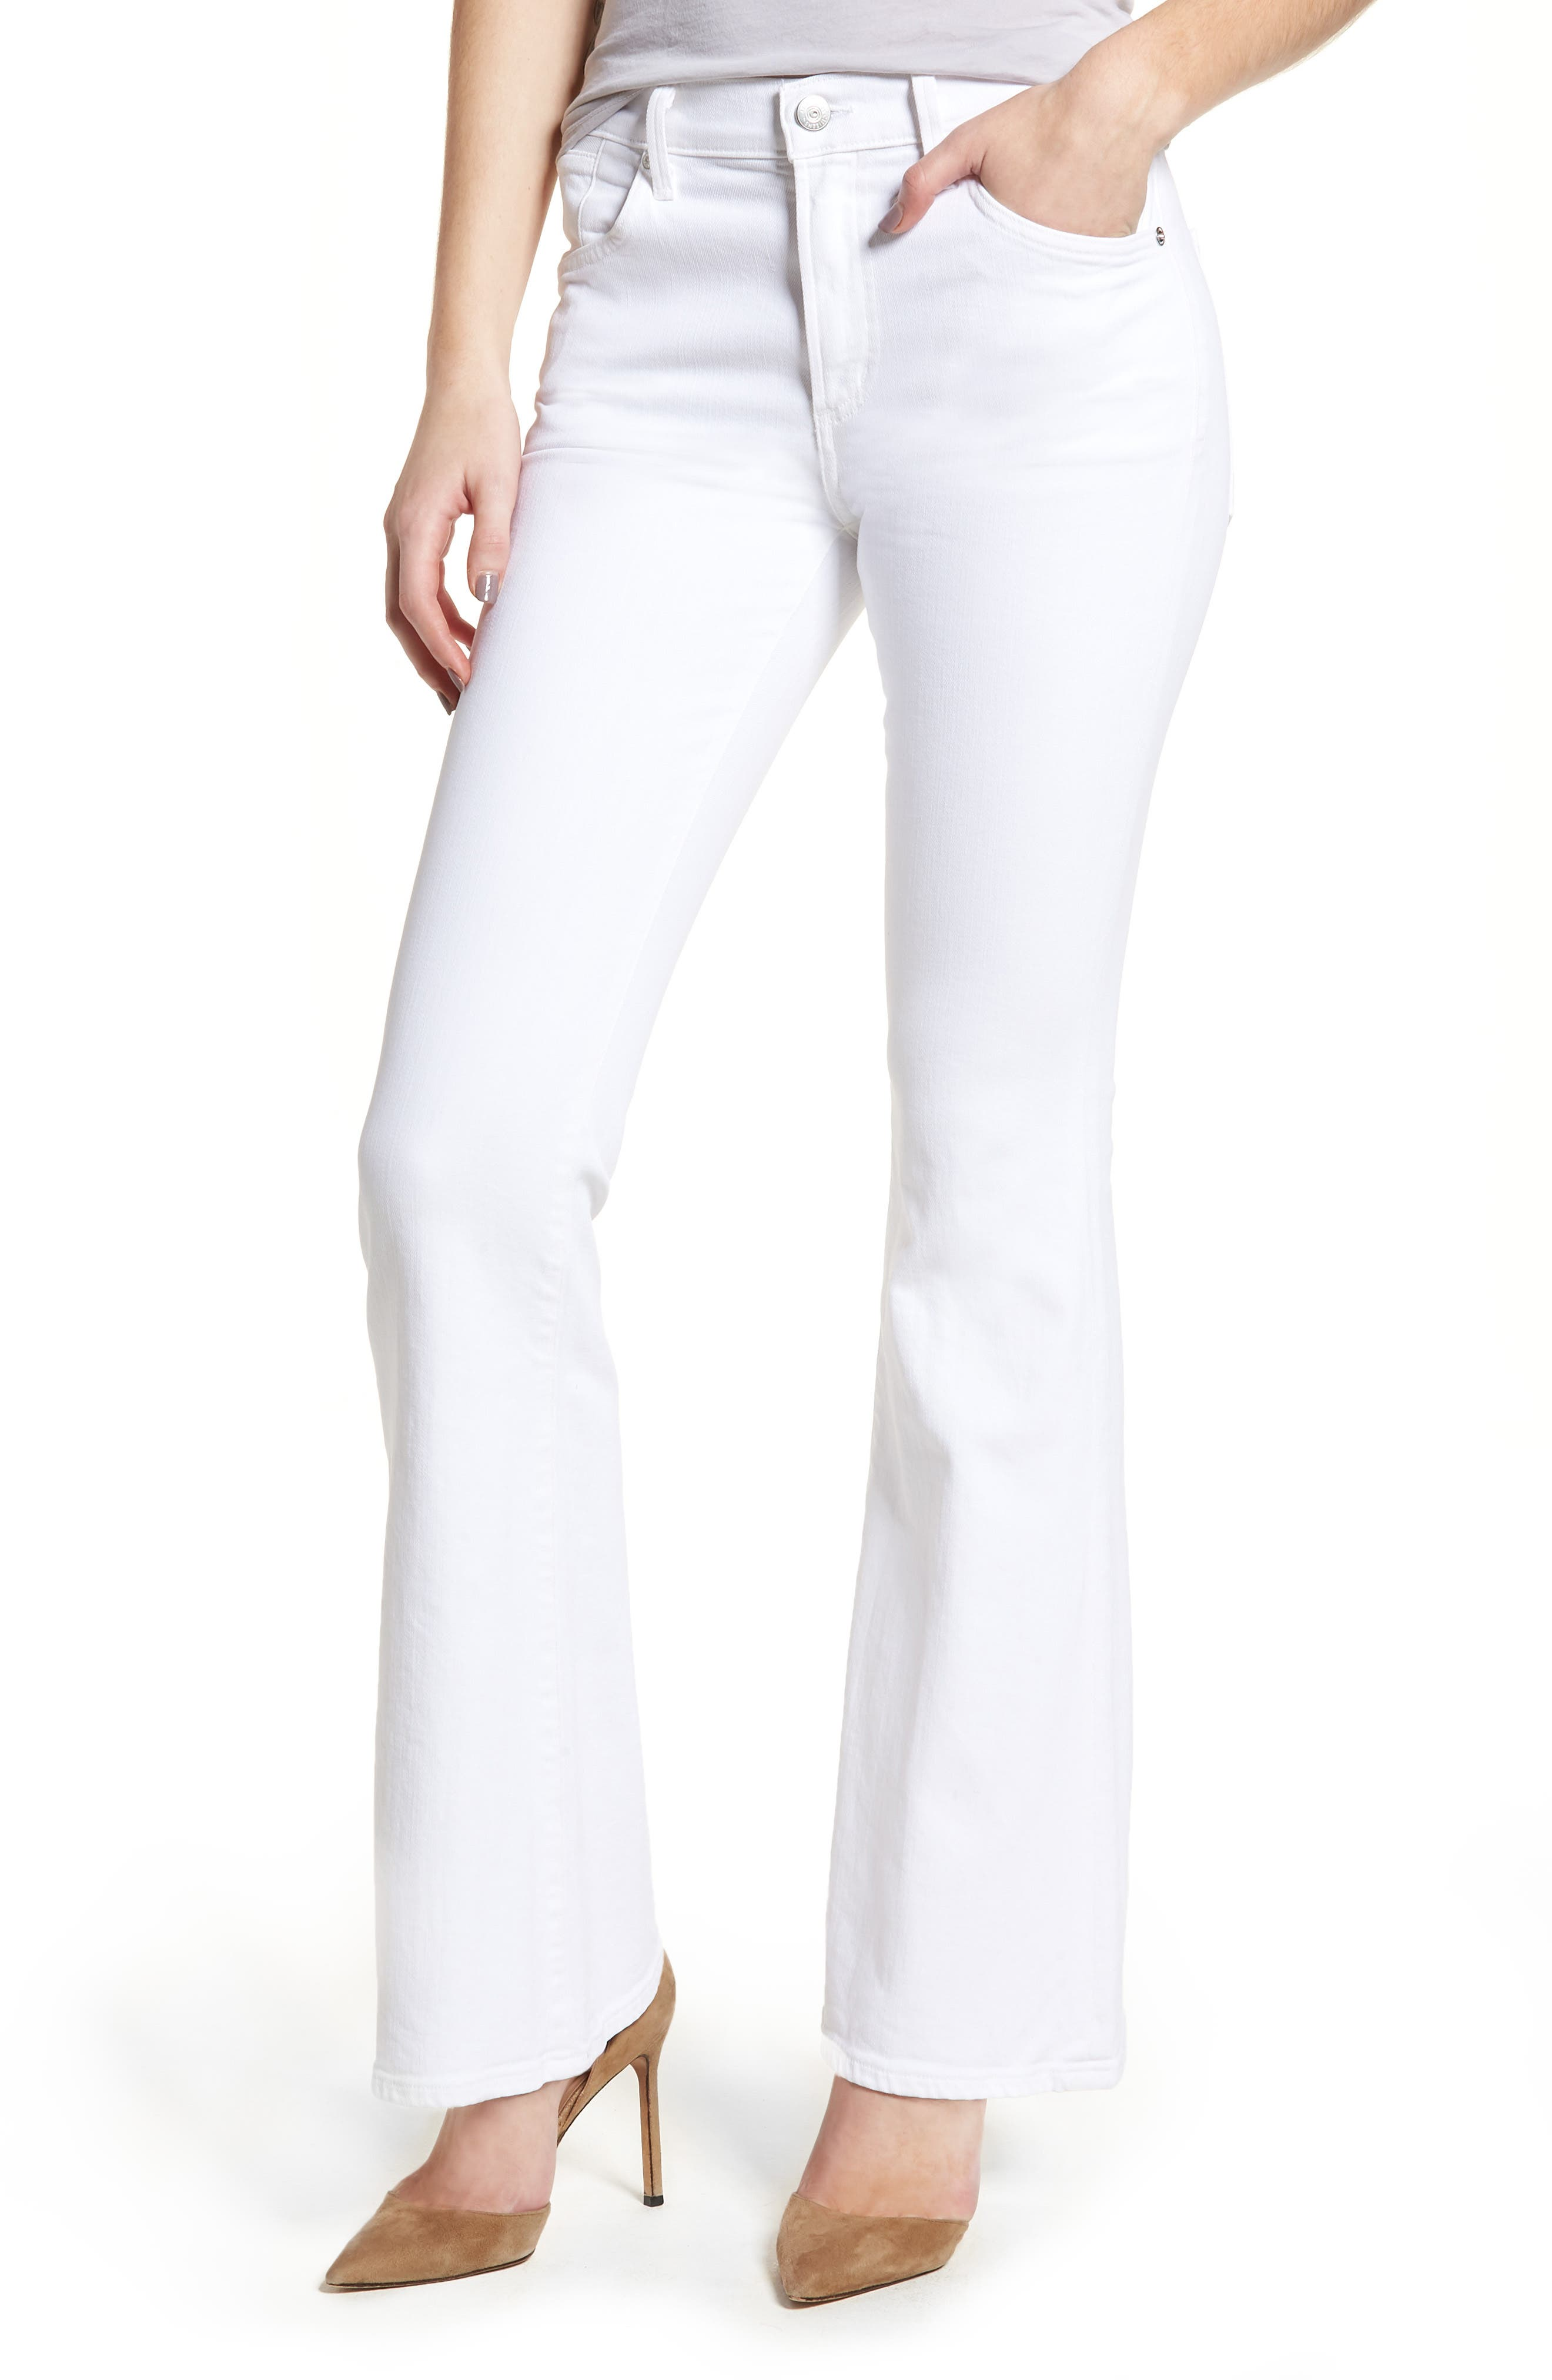 Fleetwood Flare Jeans,                         Main,                         color, Optic White